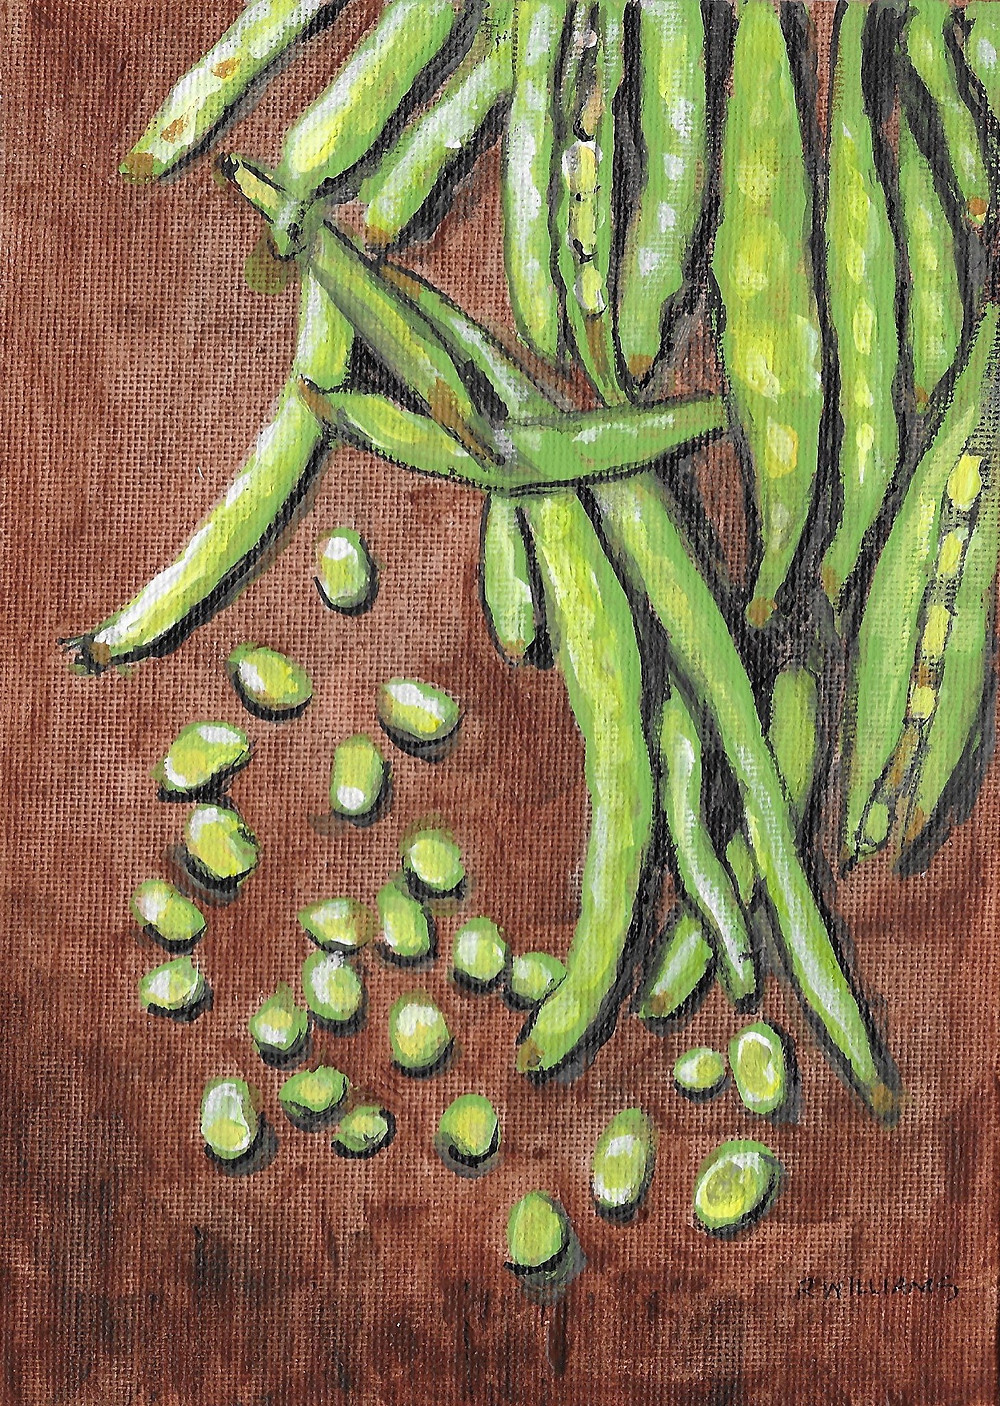 Green Peas in Pods Drawing